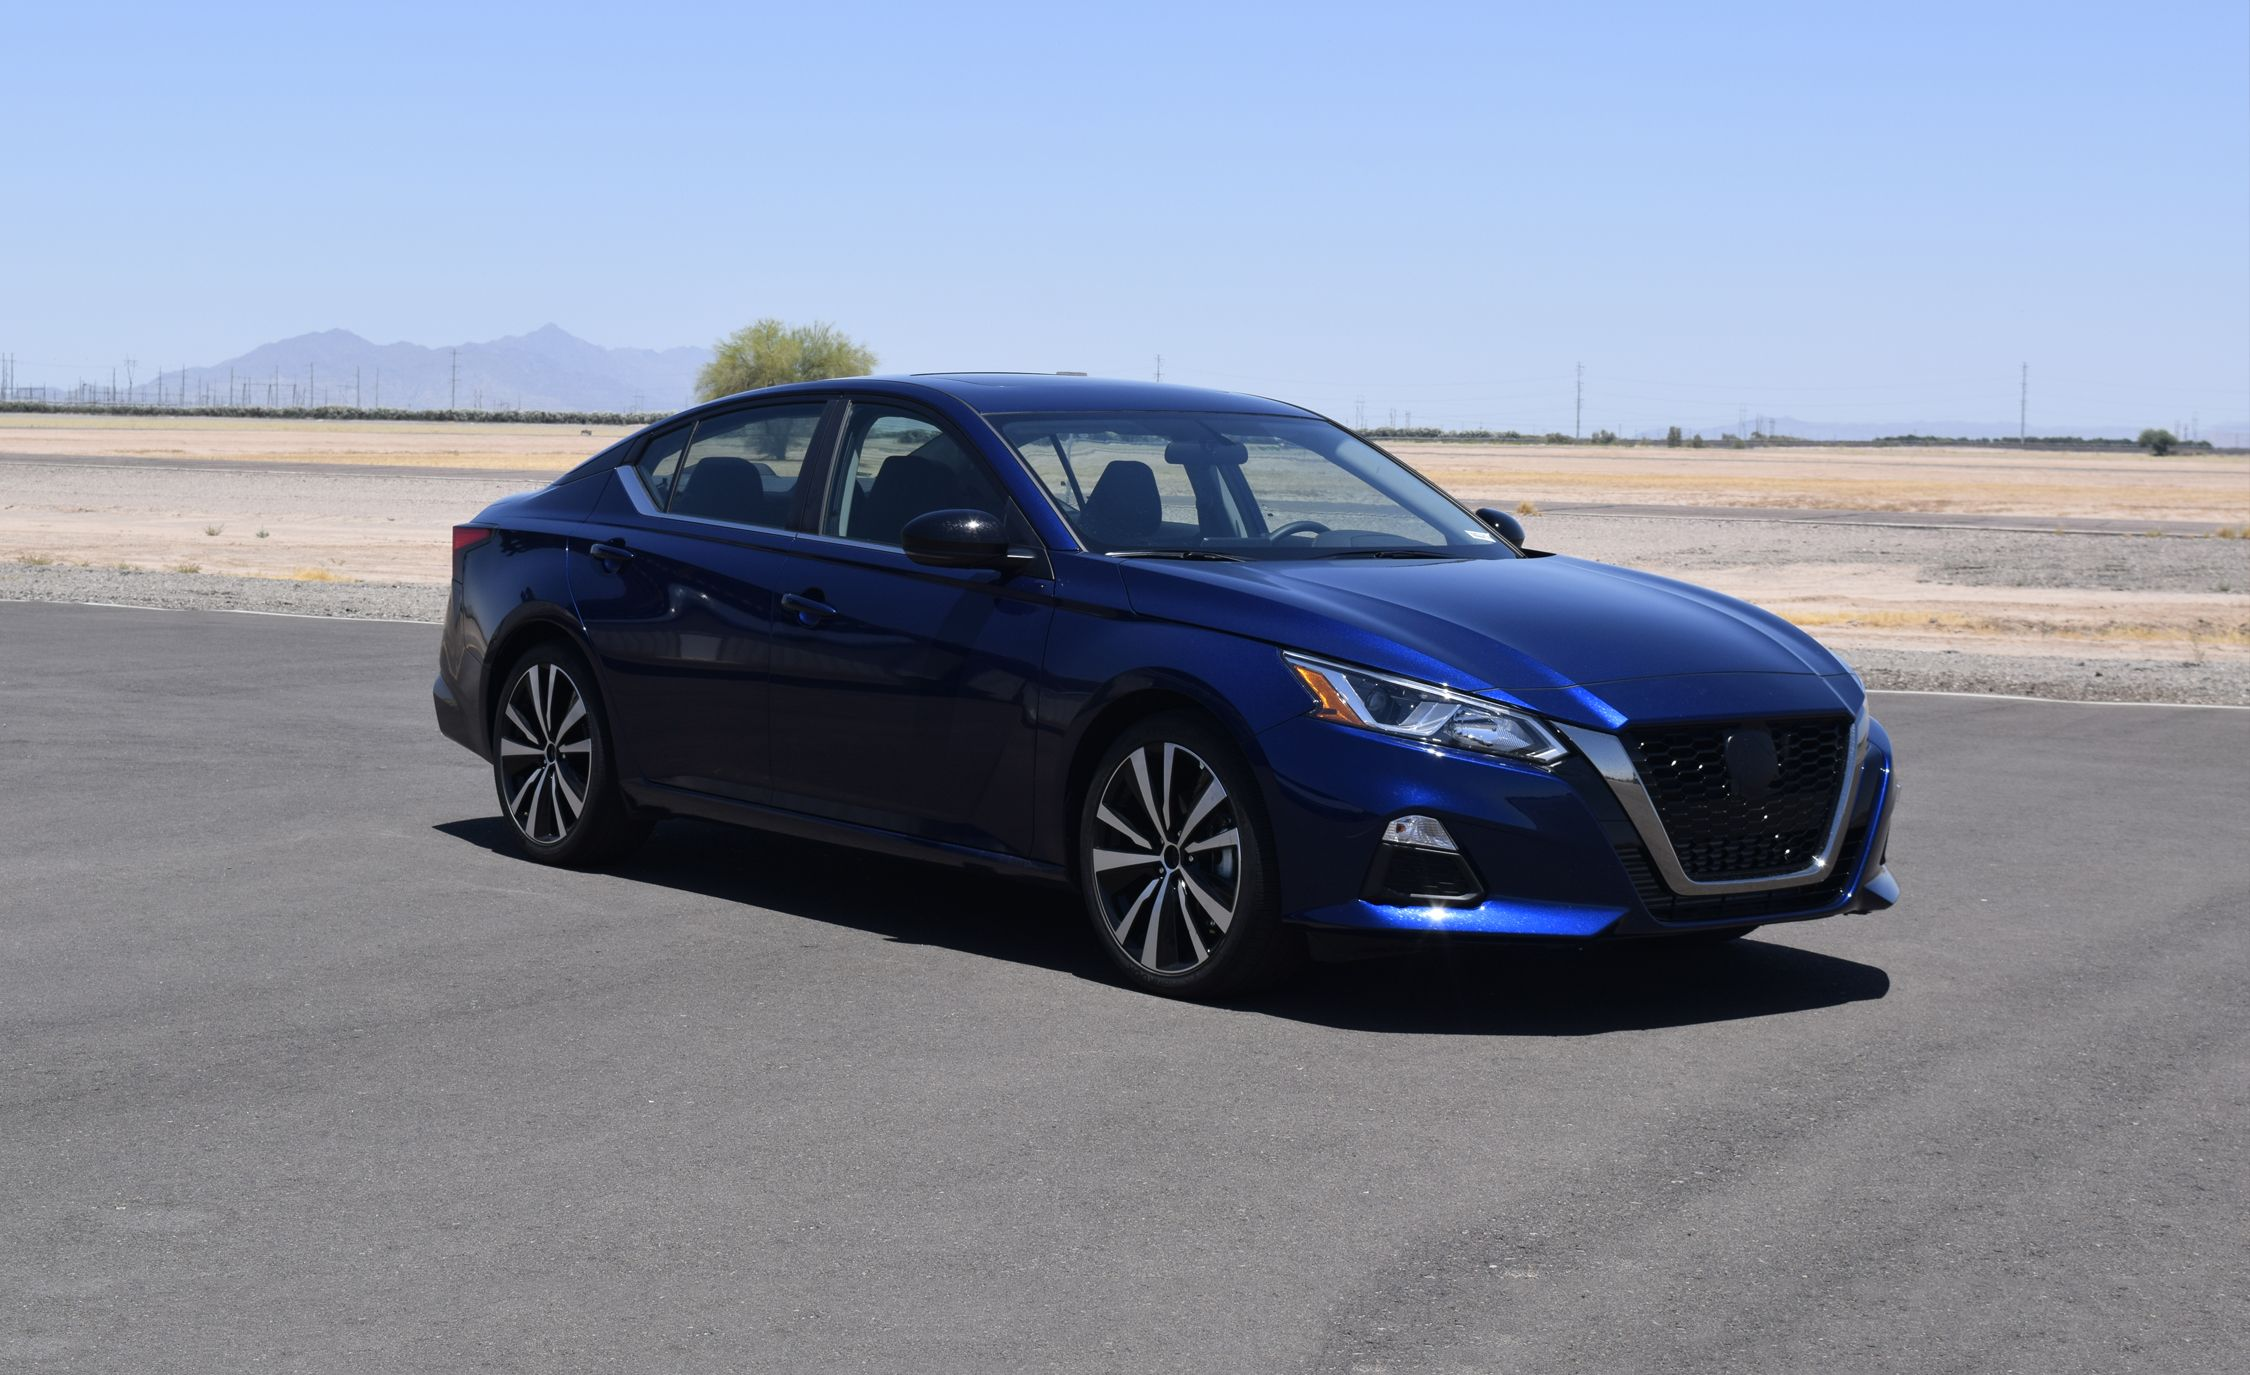 We Drive The 2019 Nissan Altima And Its Two New Engines